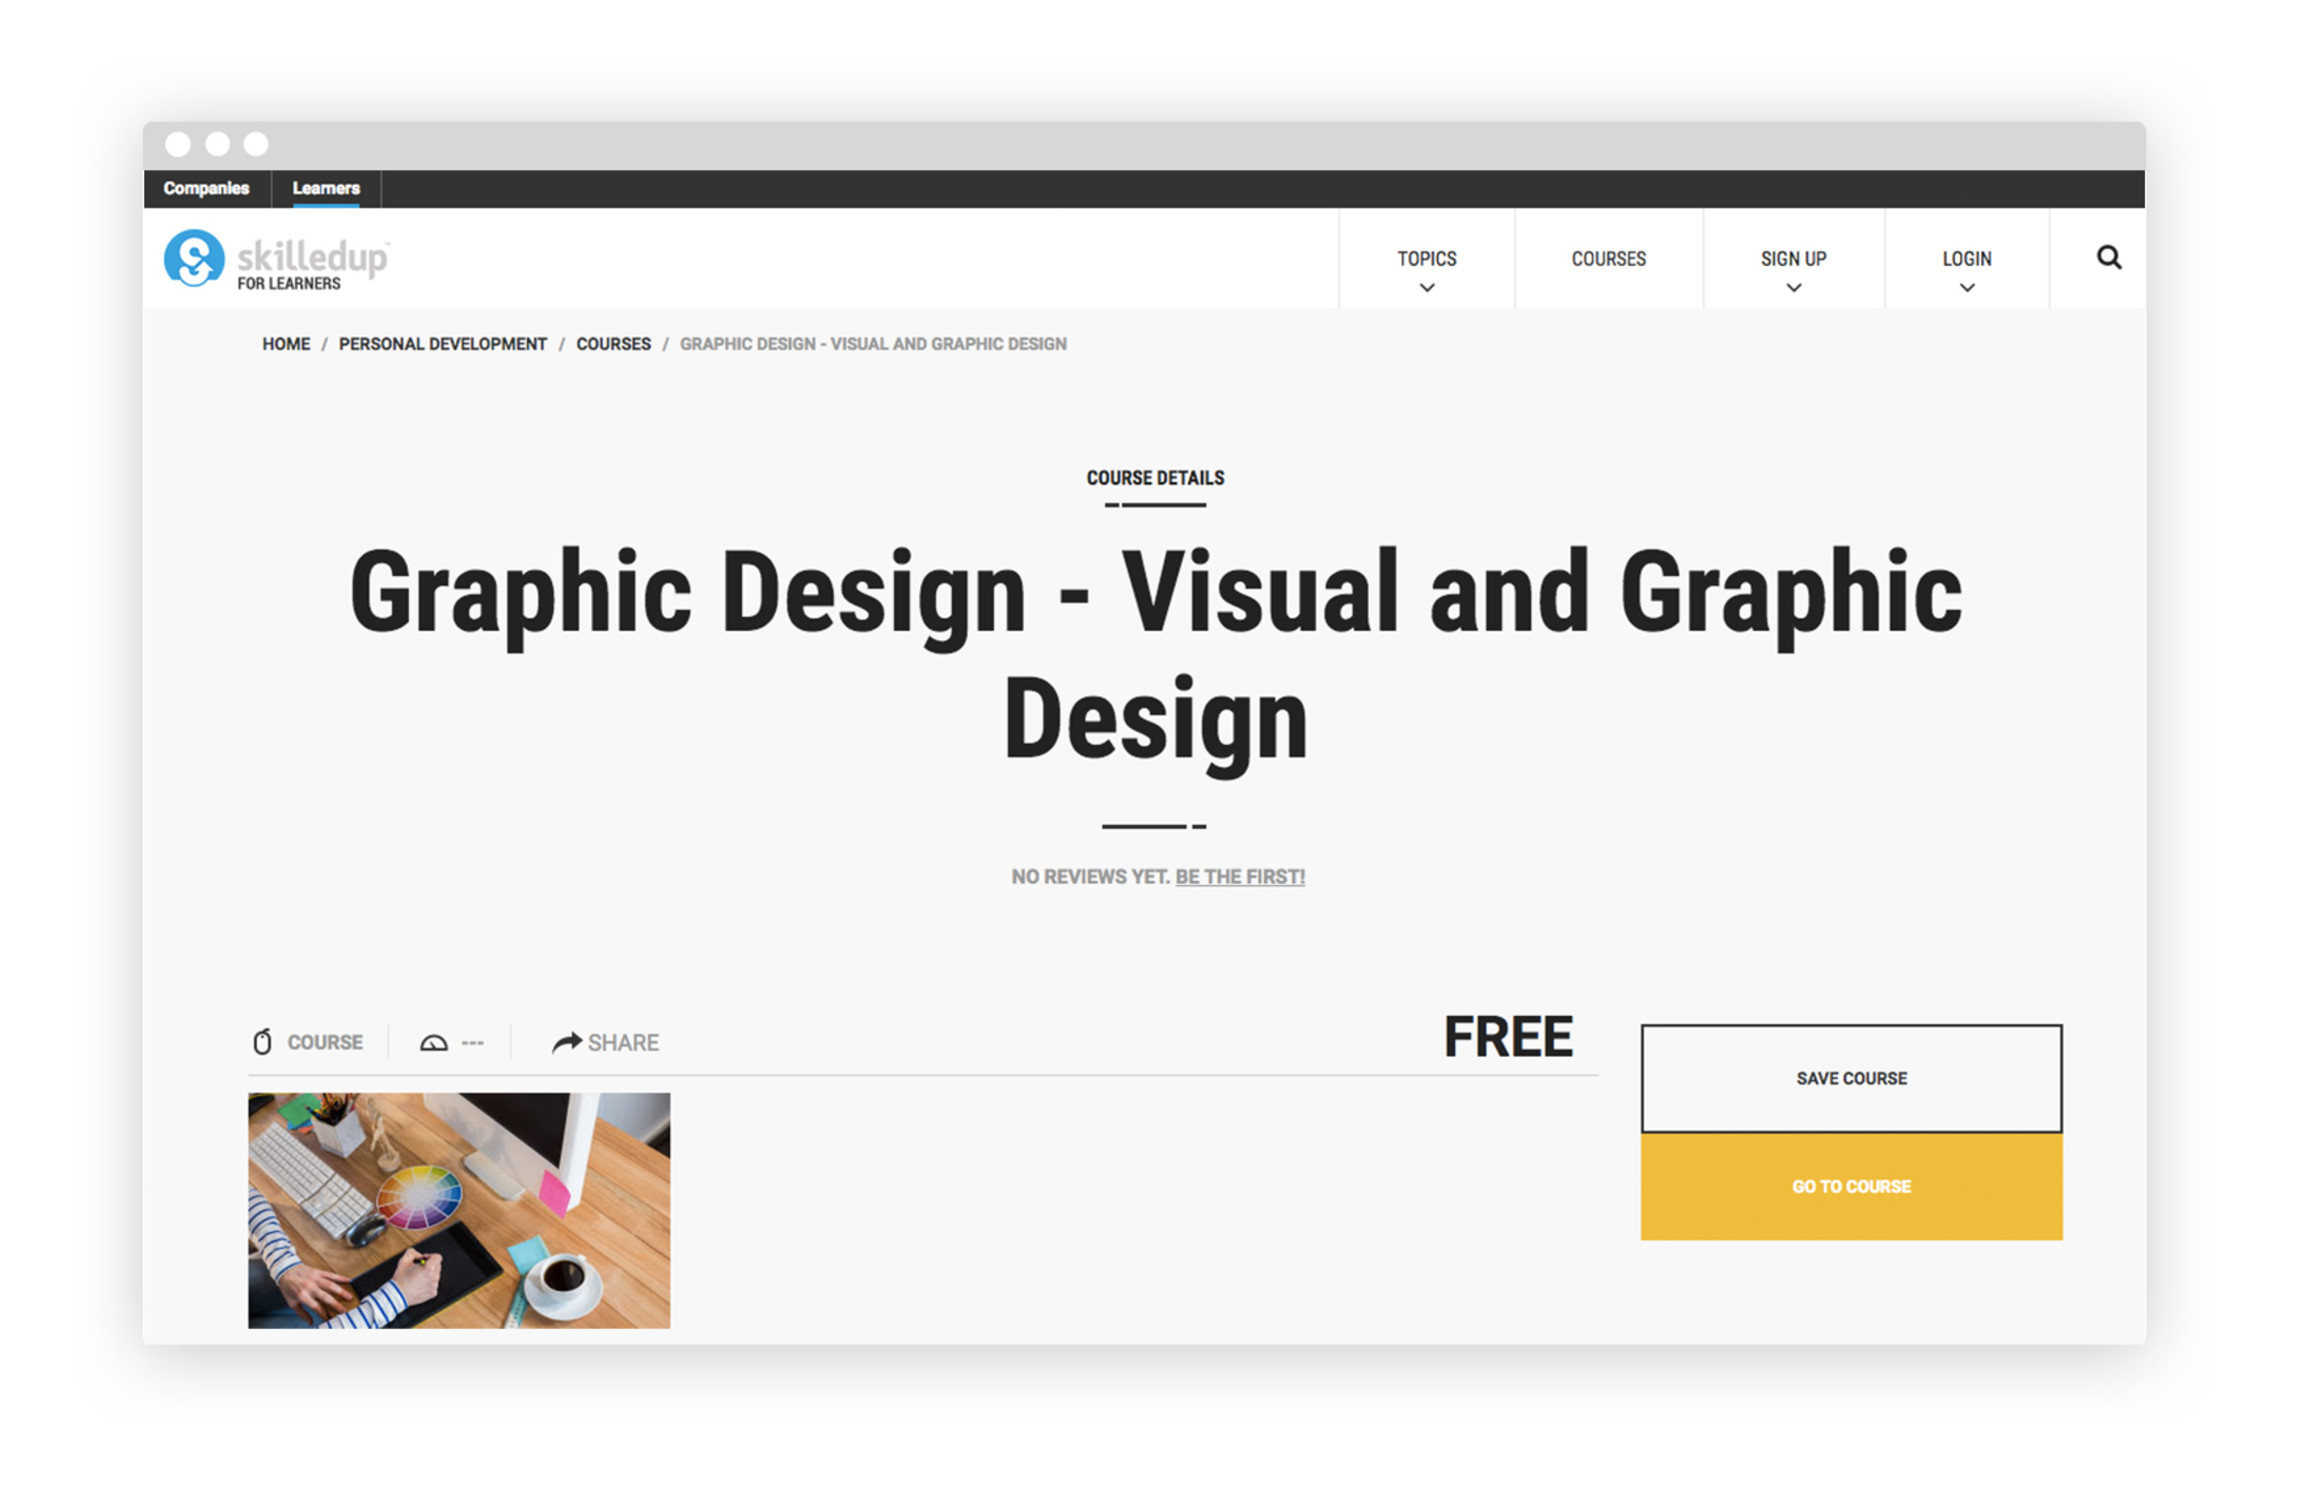 11 Extremely Helpful And Free Online Graphic Design Courses